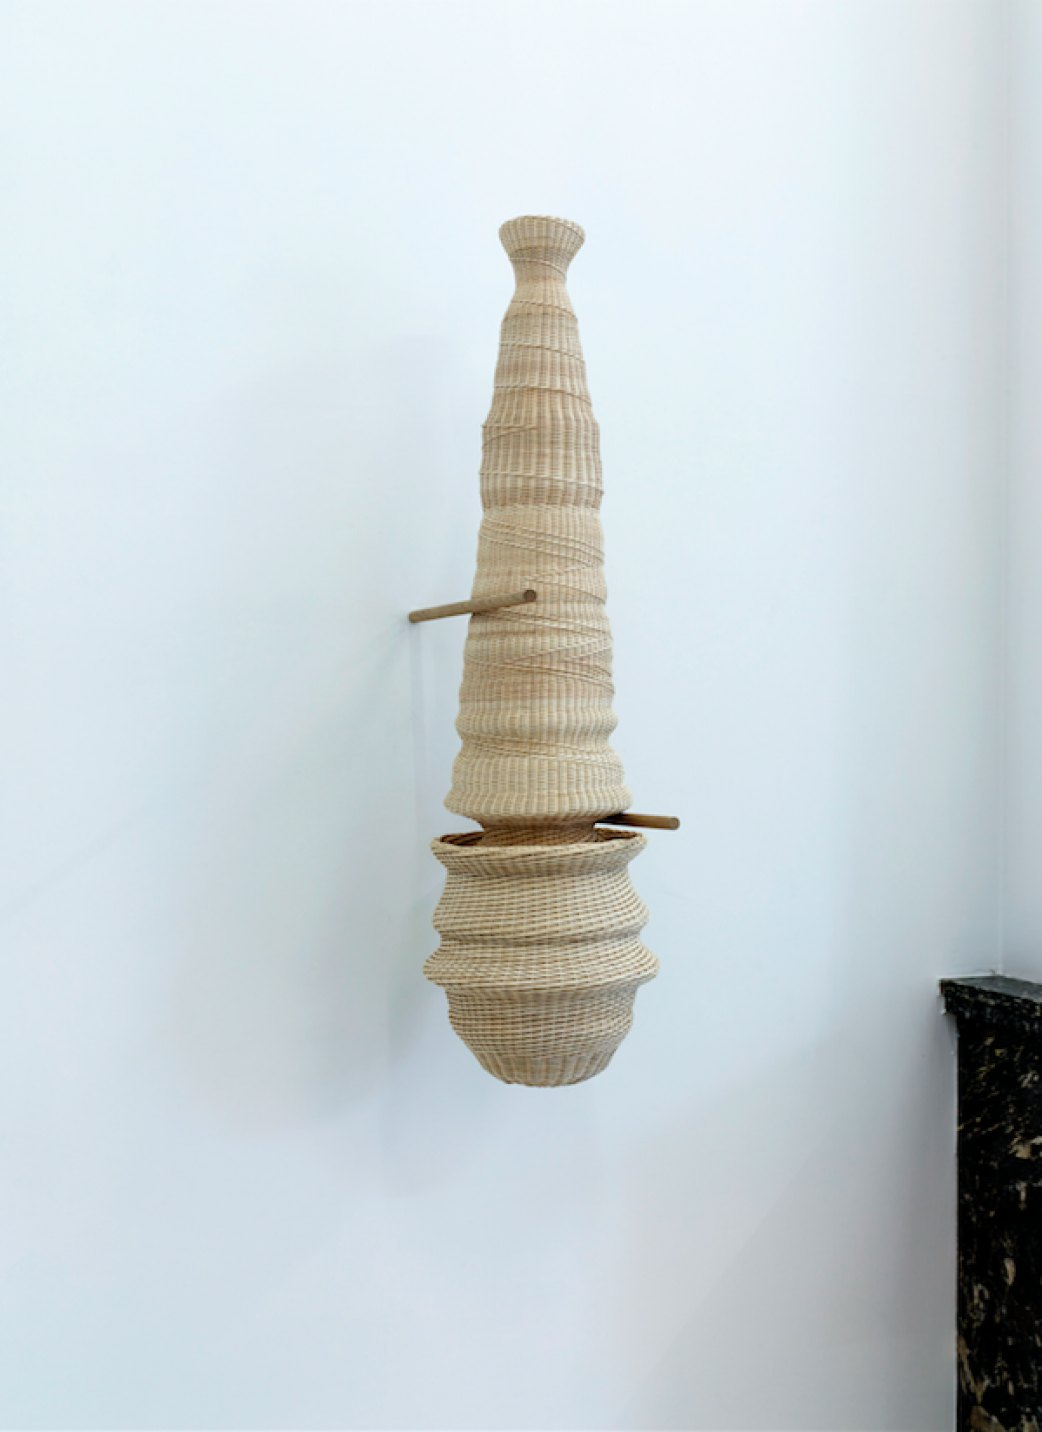 Dan Coopey,<em>&nbsp;untitled (Xia / Sinai),</em>&nbsp;2017,&nbsp;rattan, walnut, kernel, mother of pearl, chewing gum, oak,&nbsp;82 × 35 ×&nbsp;23 cm - Mendes Wood DM